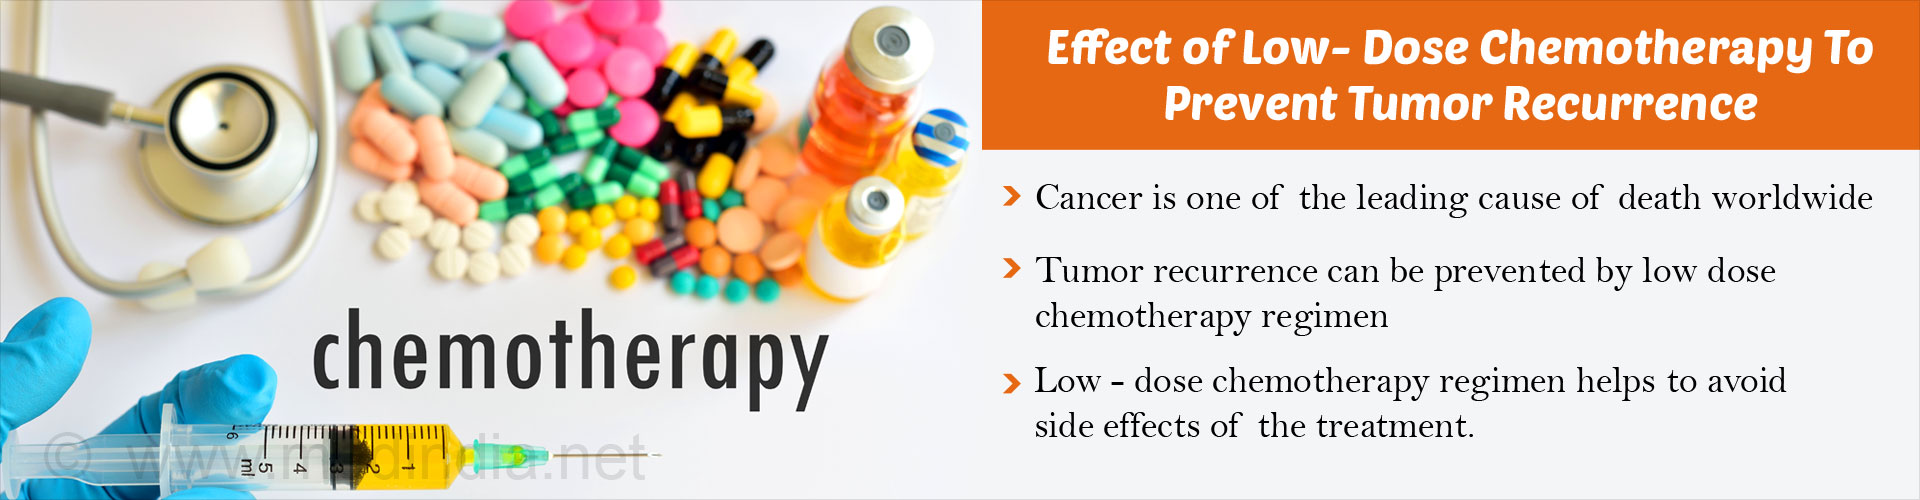 Low-Dose Chemotherapy Regimen to Prevent Recurrence in Certain Cancers